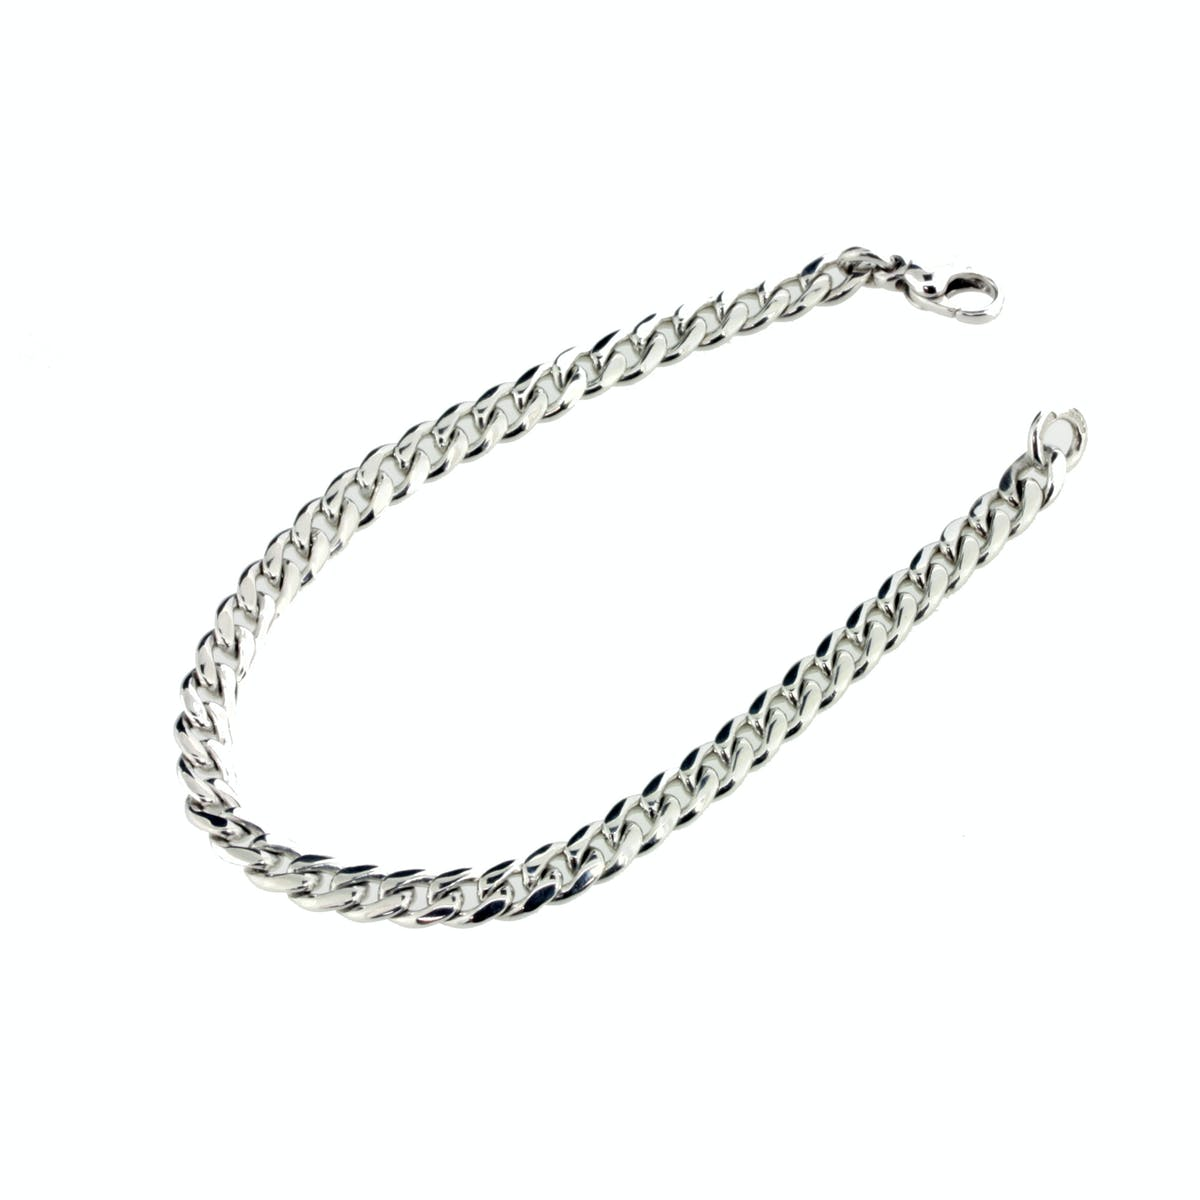 18ct White Gold Curb Bracelet Jamieson Carry